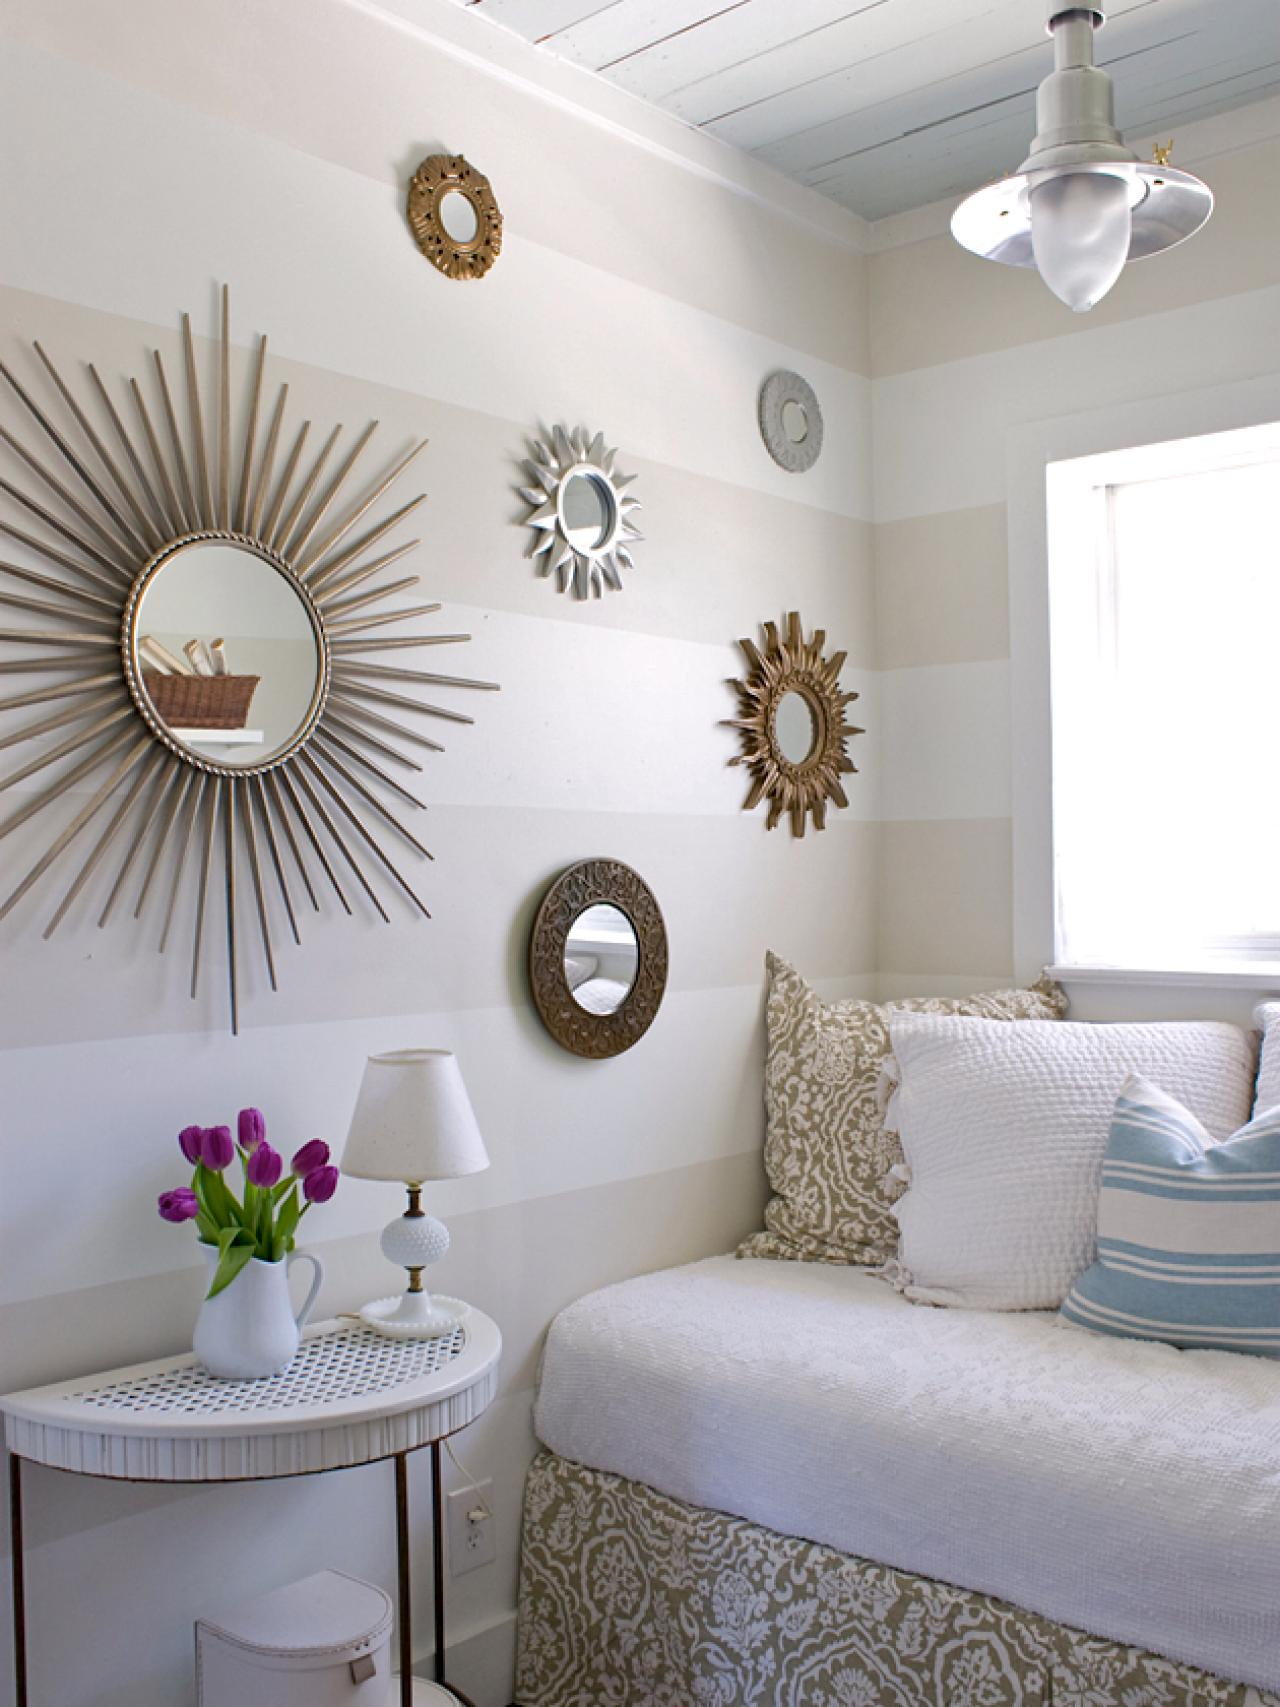 C mo decorar una habitaci n peque a 5 ejemplos cehome for How to make your small room beautiful